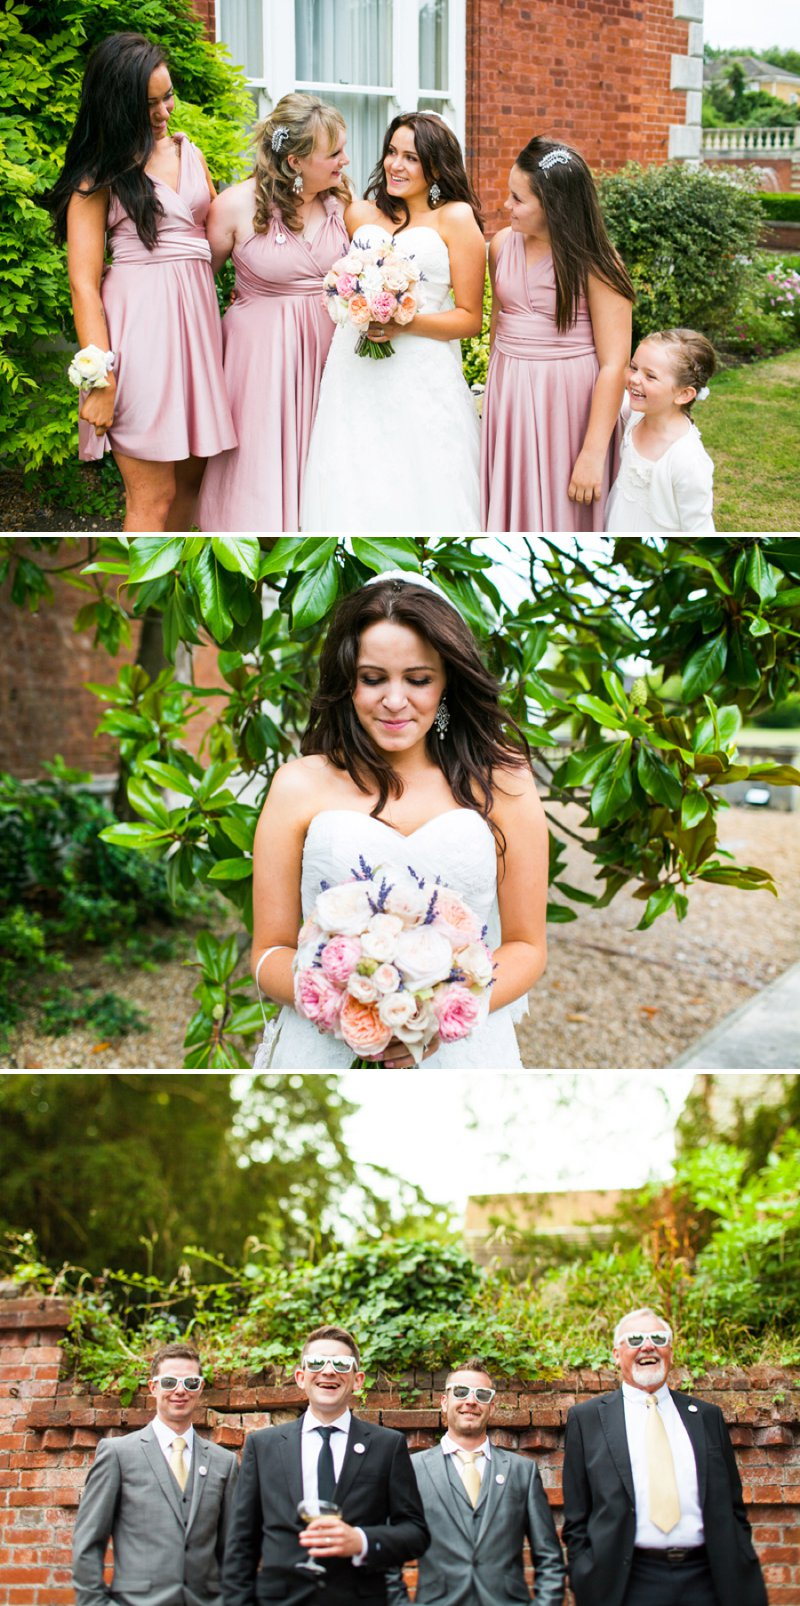 An Elegant Gold Themed Wedding At Fetcham Park With Bride In Dagan By Pronovias And Groom In Hugo Boss Suit With Bridemaids In Pale Pink Gowns From Etsy And Images From Navy Blur1